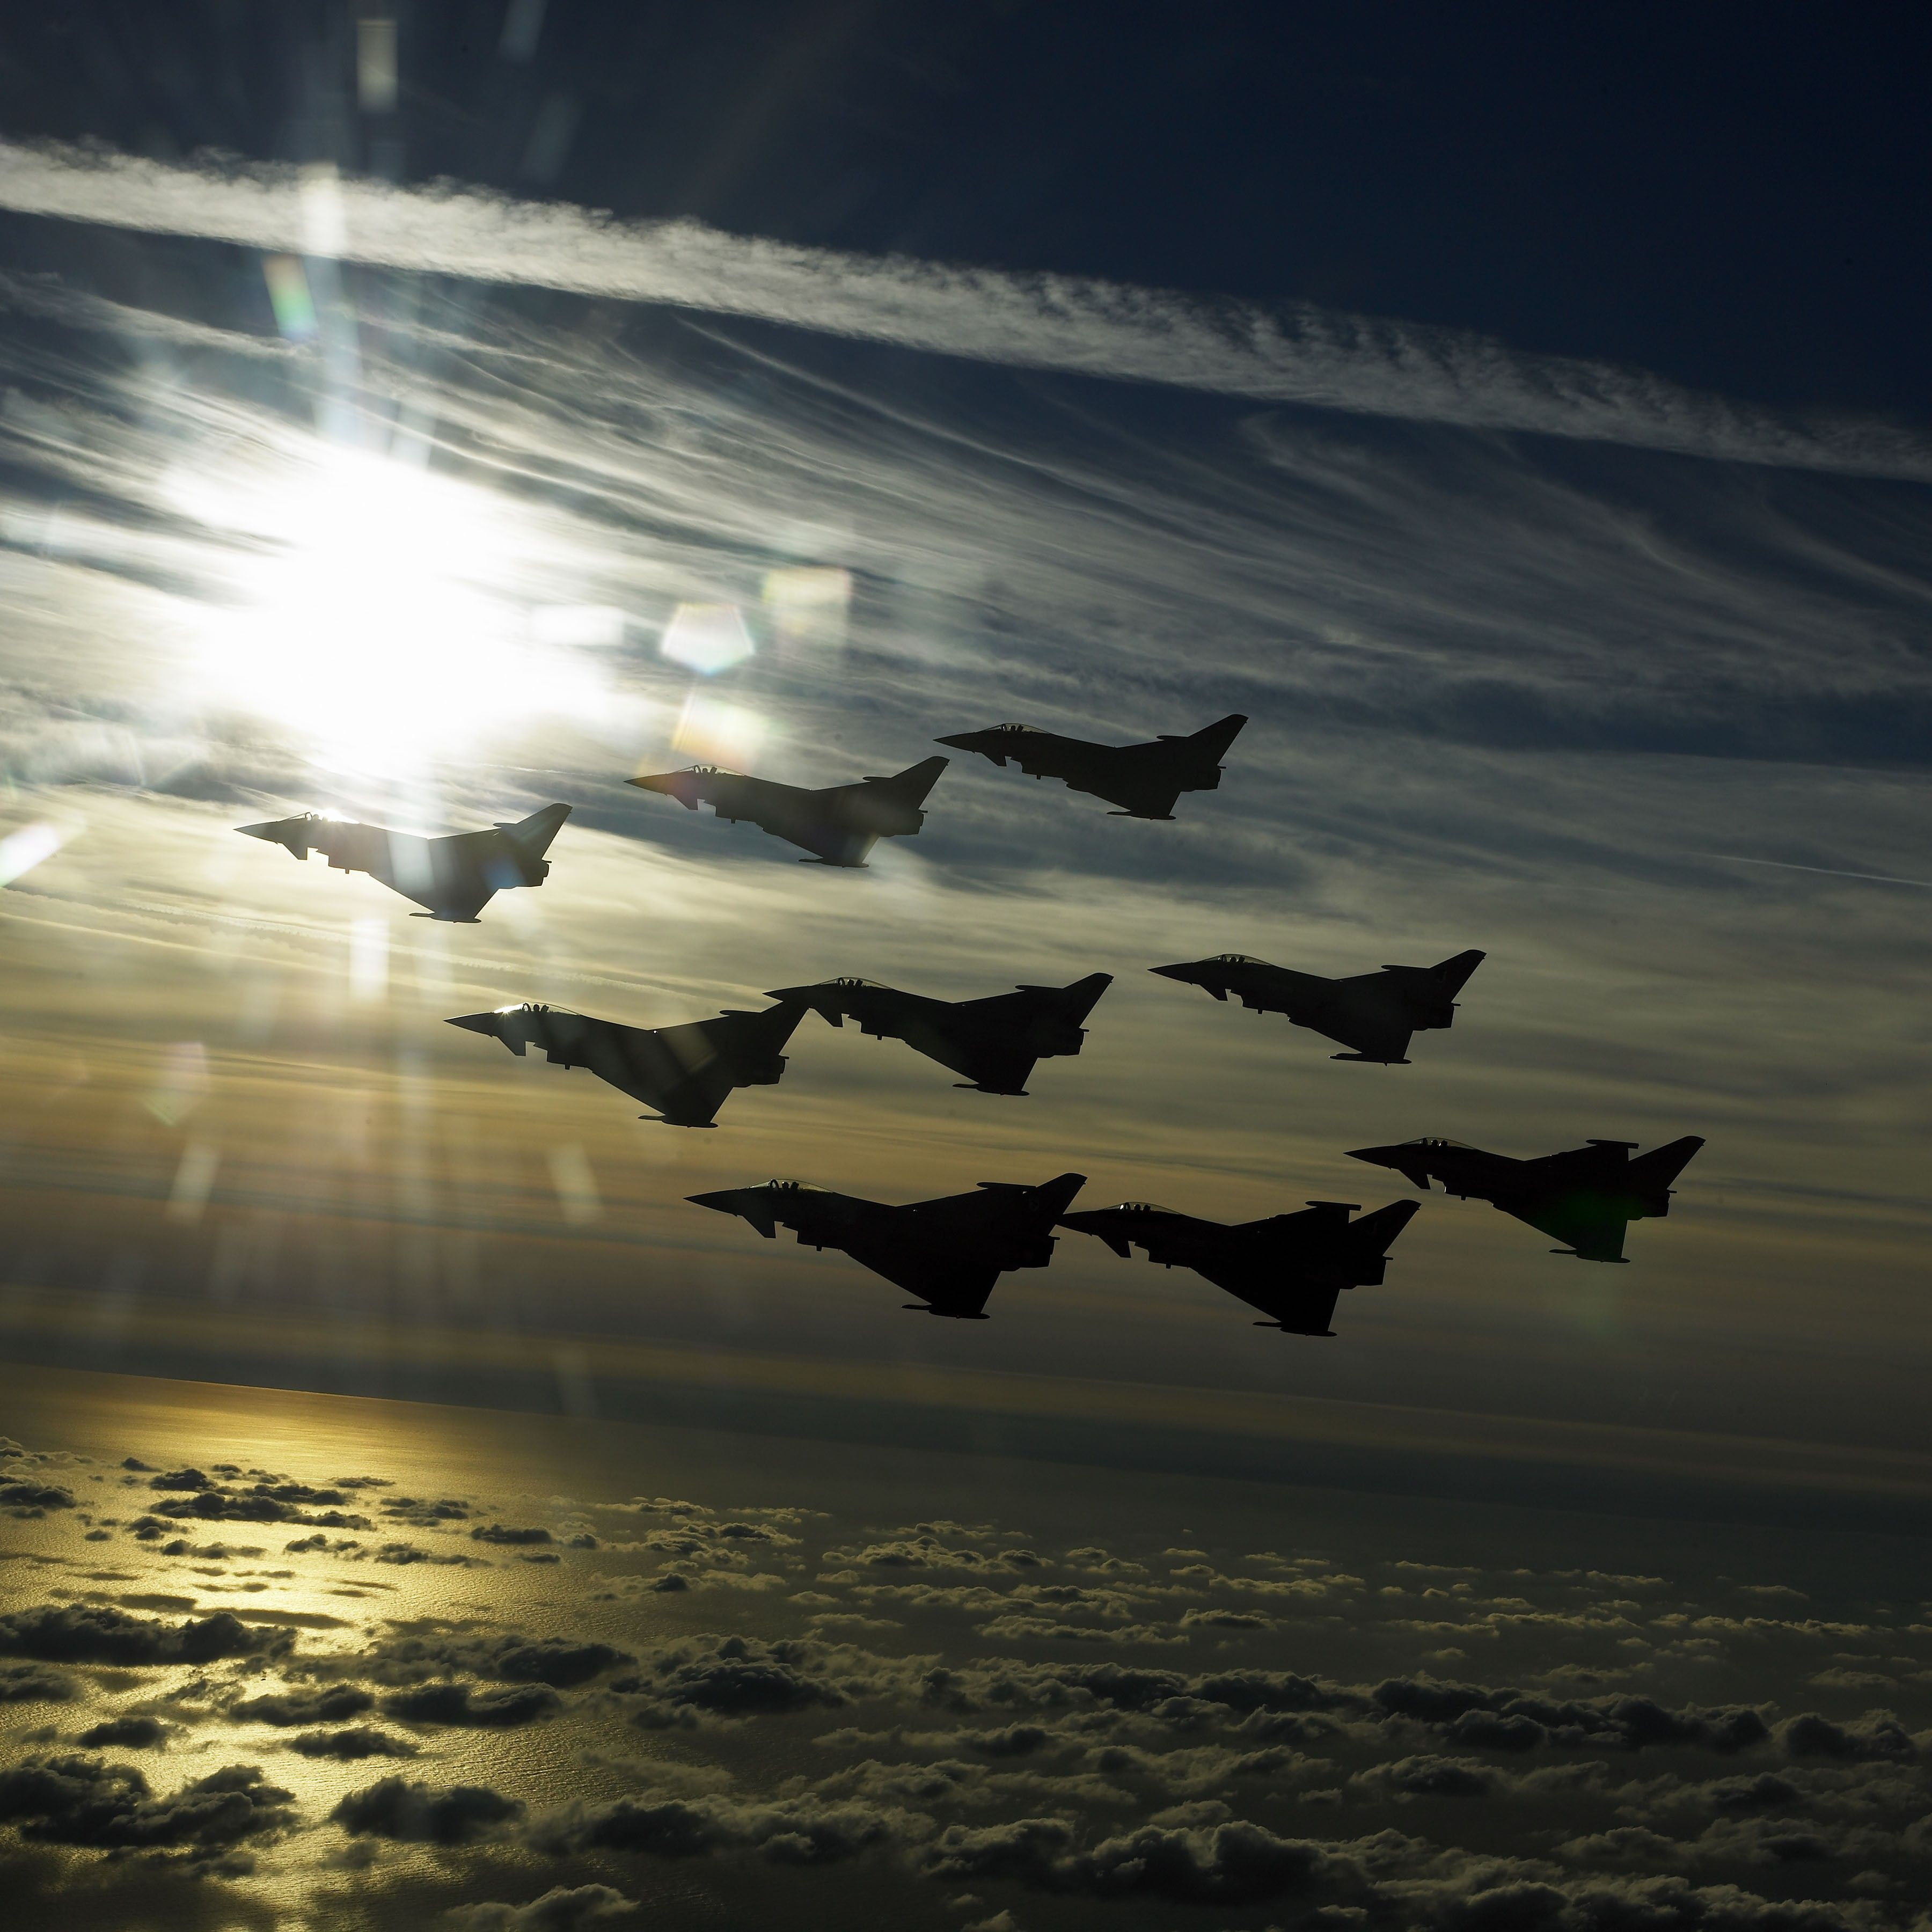 General 3600x3600 Eurofighter Typhoon jet fighter airplane aircraft sky military aircraft vehicle military